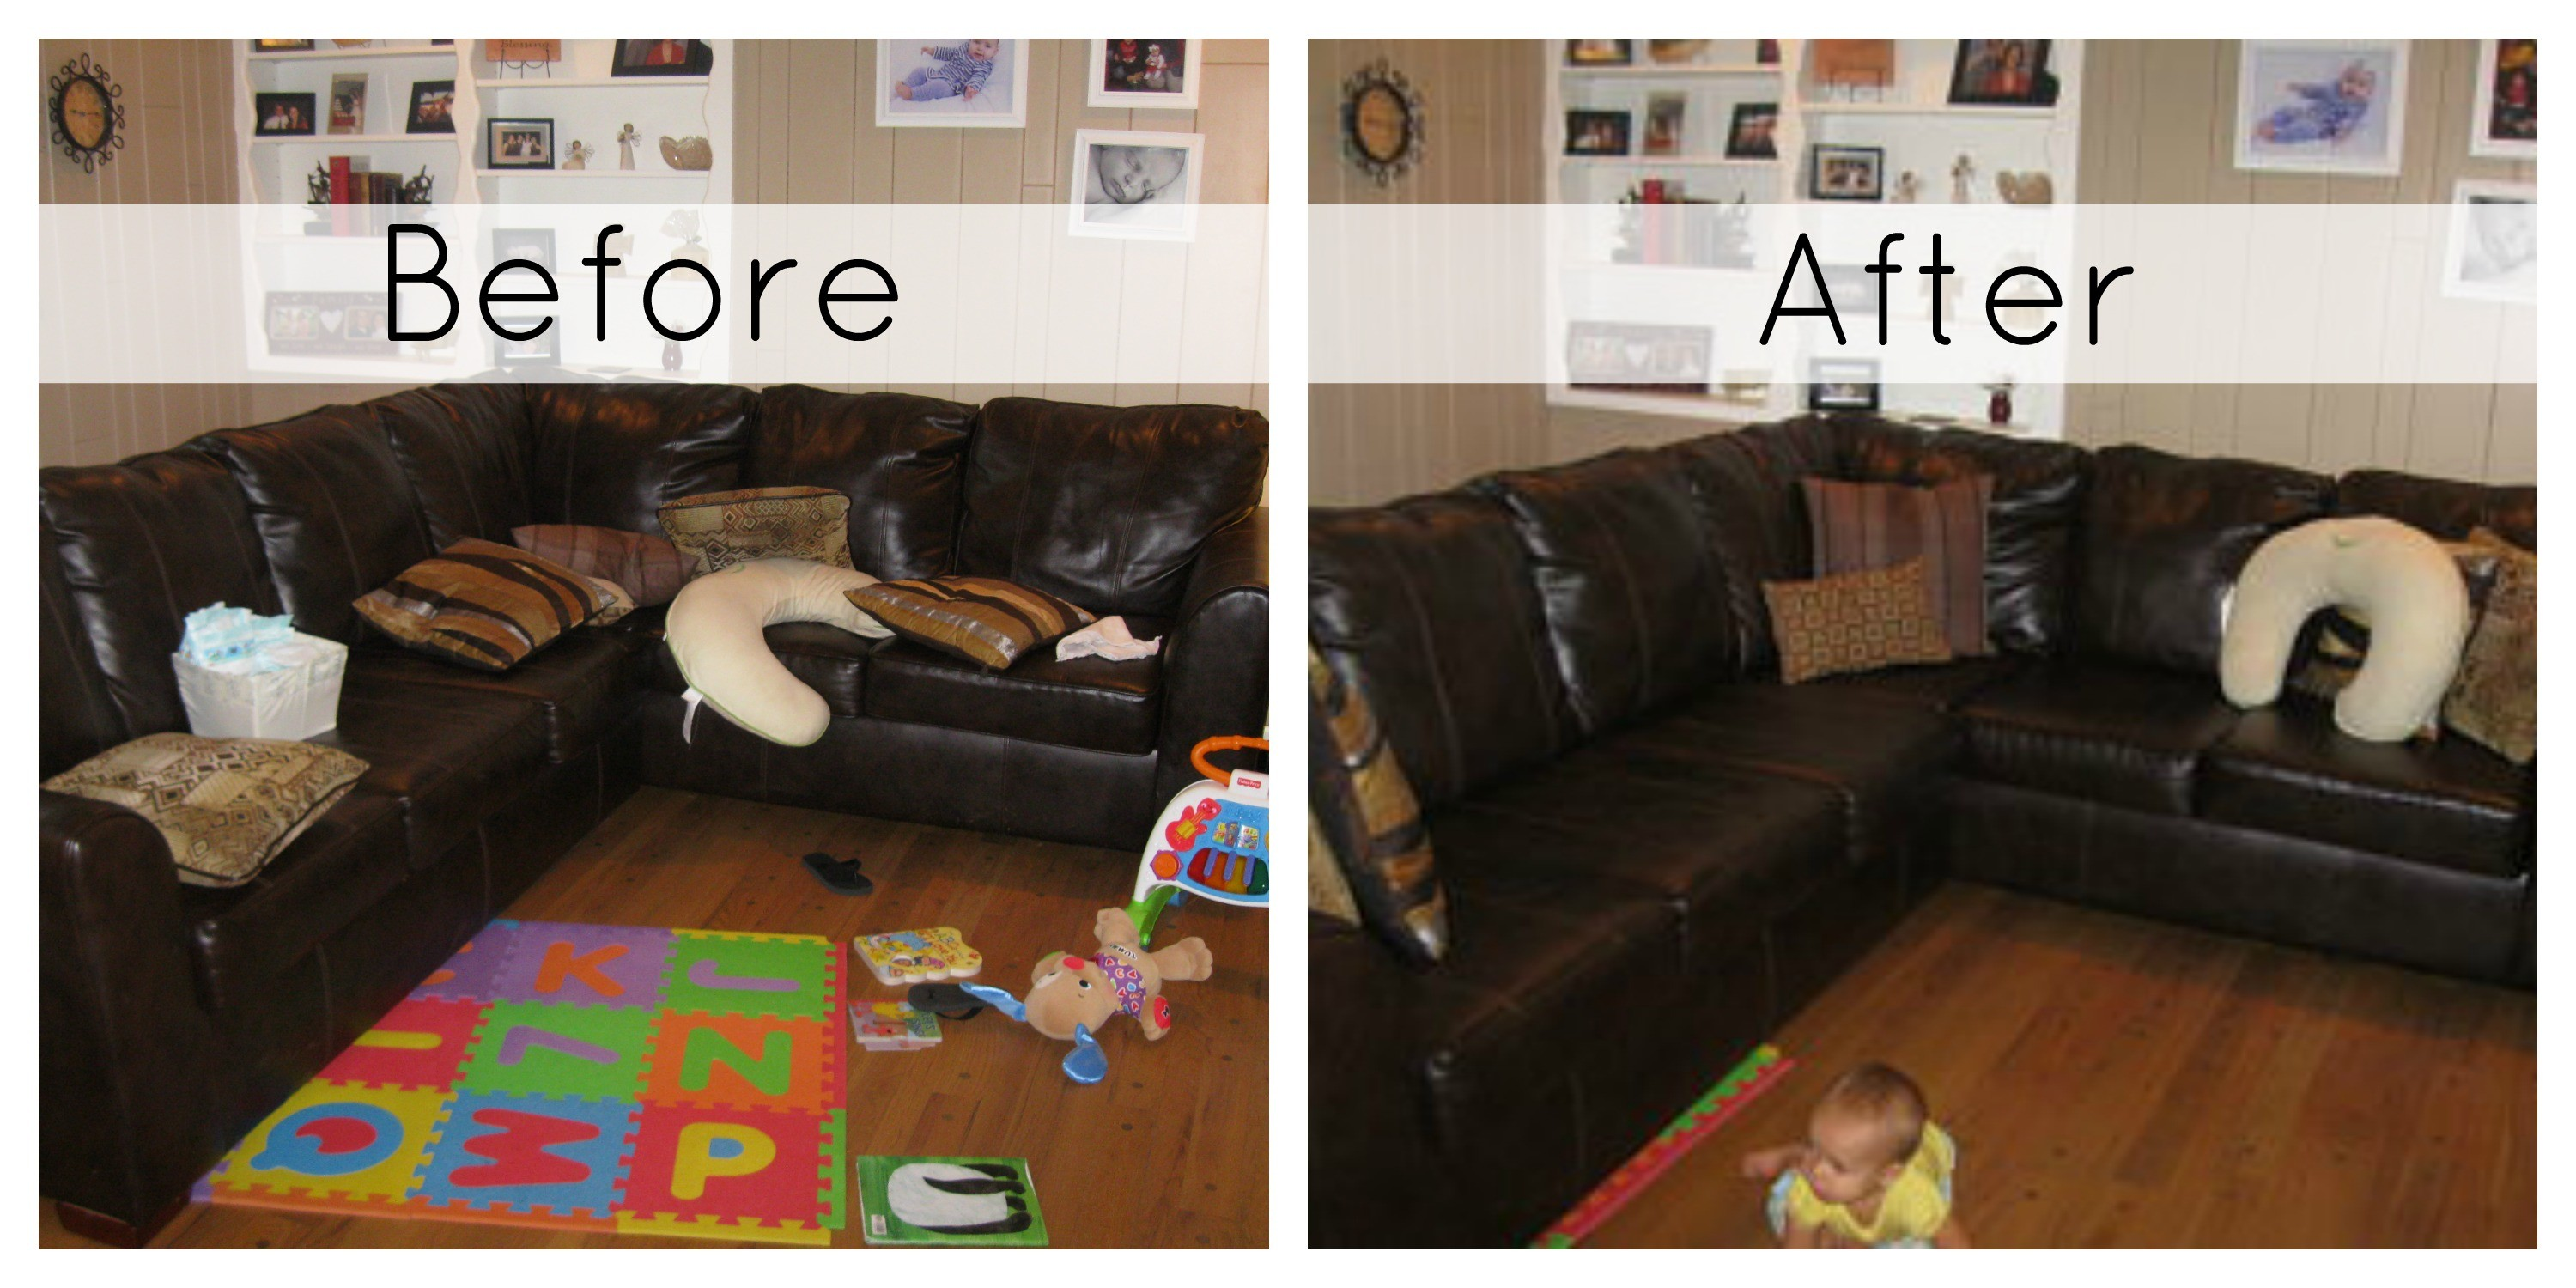 How To Clean A Cluttered House Fast